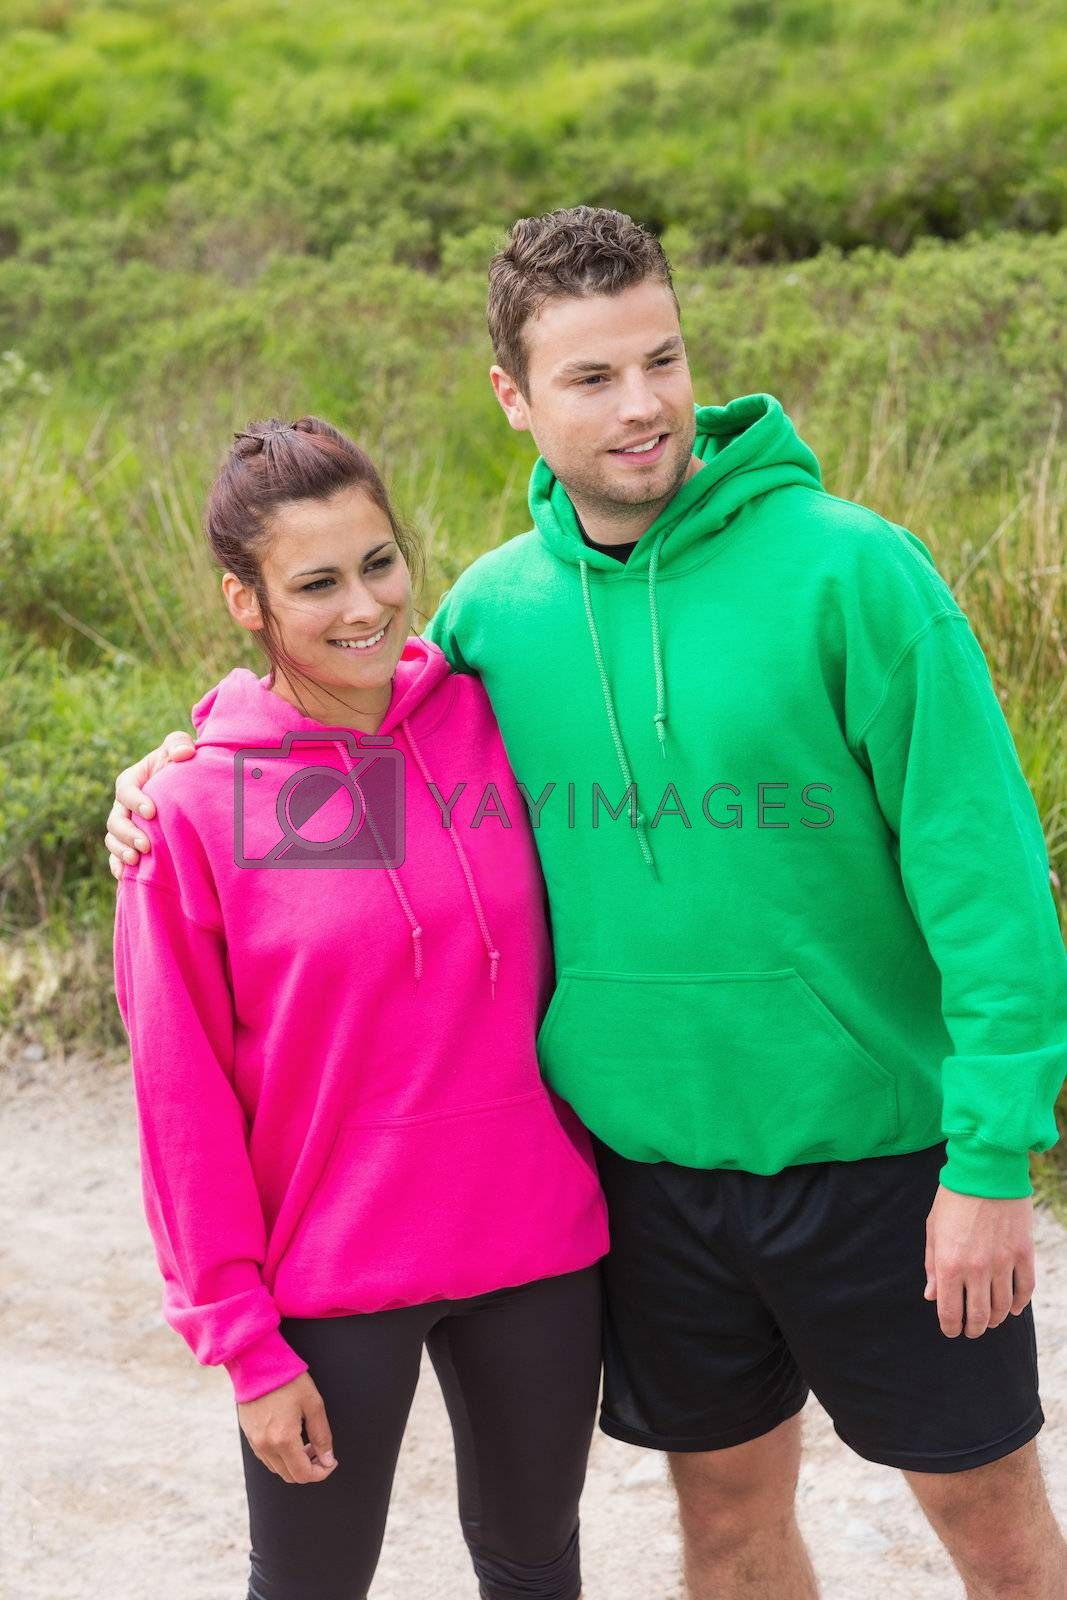 Athletic couple looking ahead and embracing by Wavebreakmedia